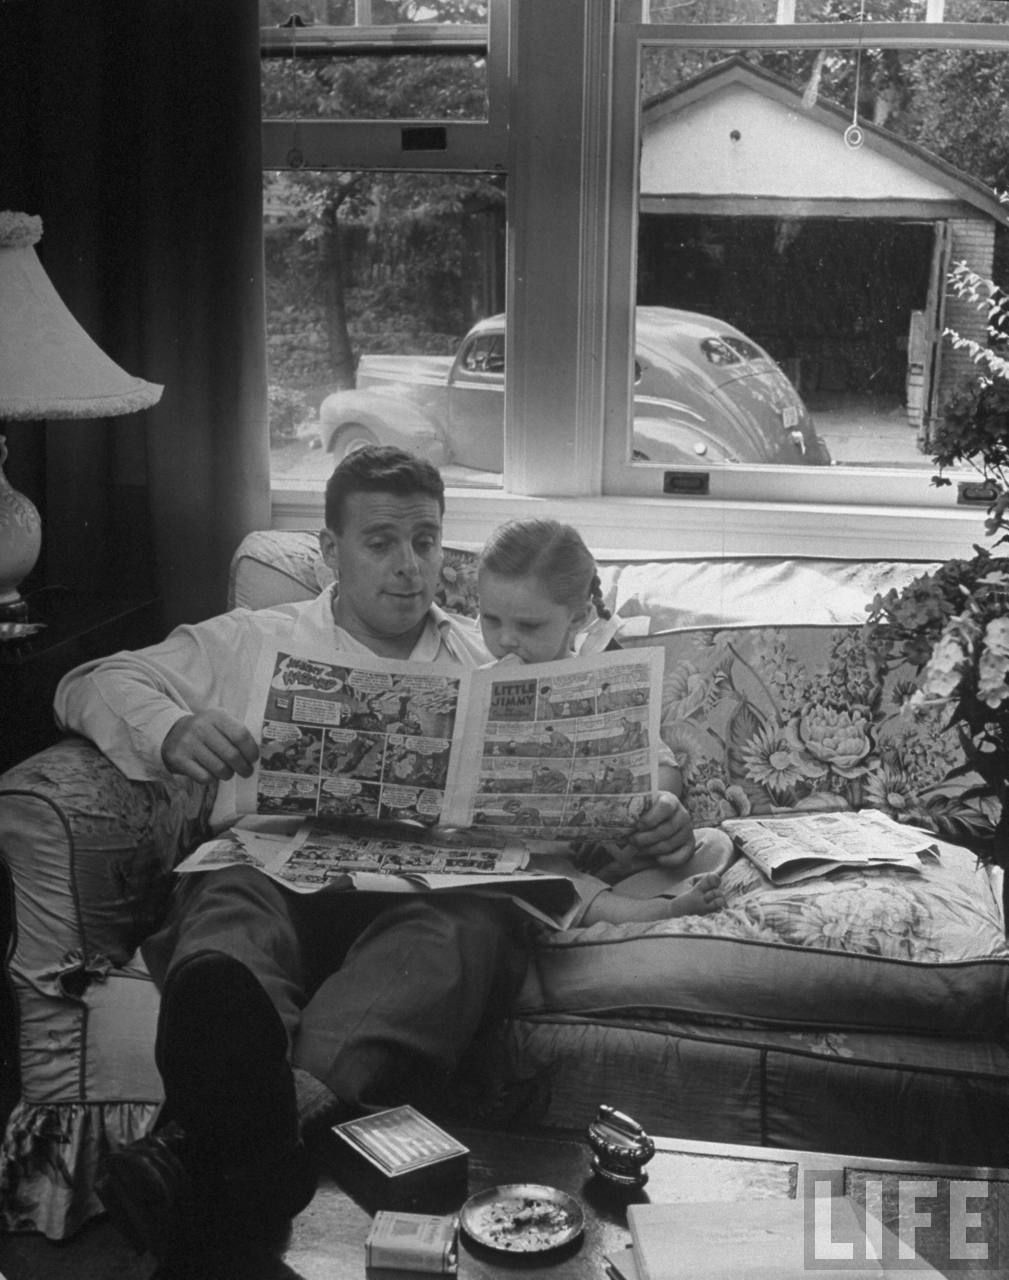 Father reading the Sunday comic pages to his daughter, 1946. (Nina Leen)